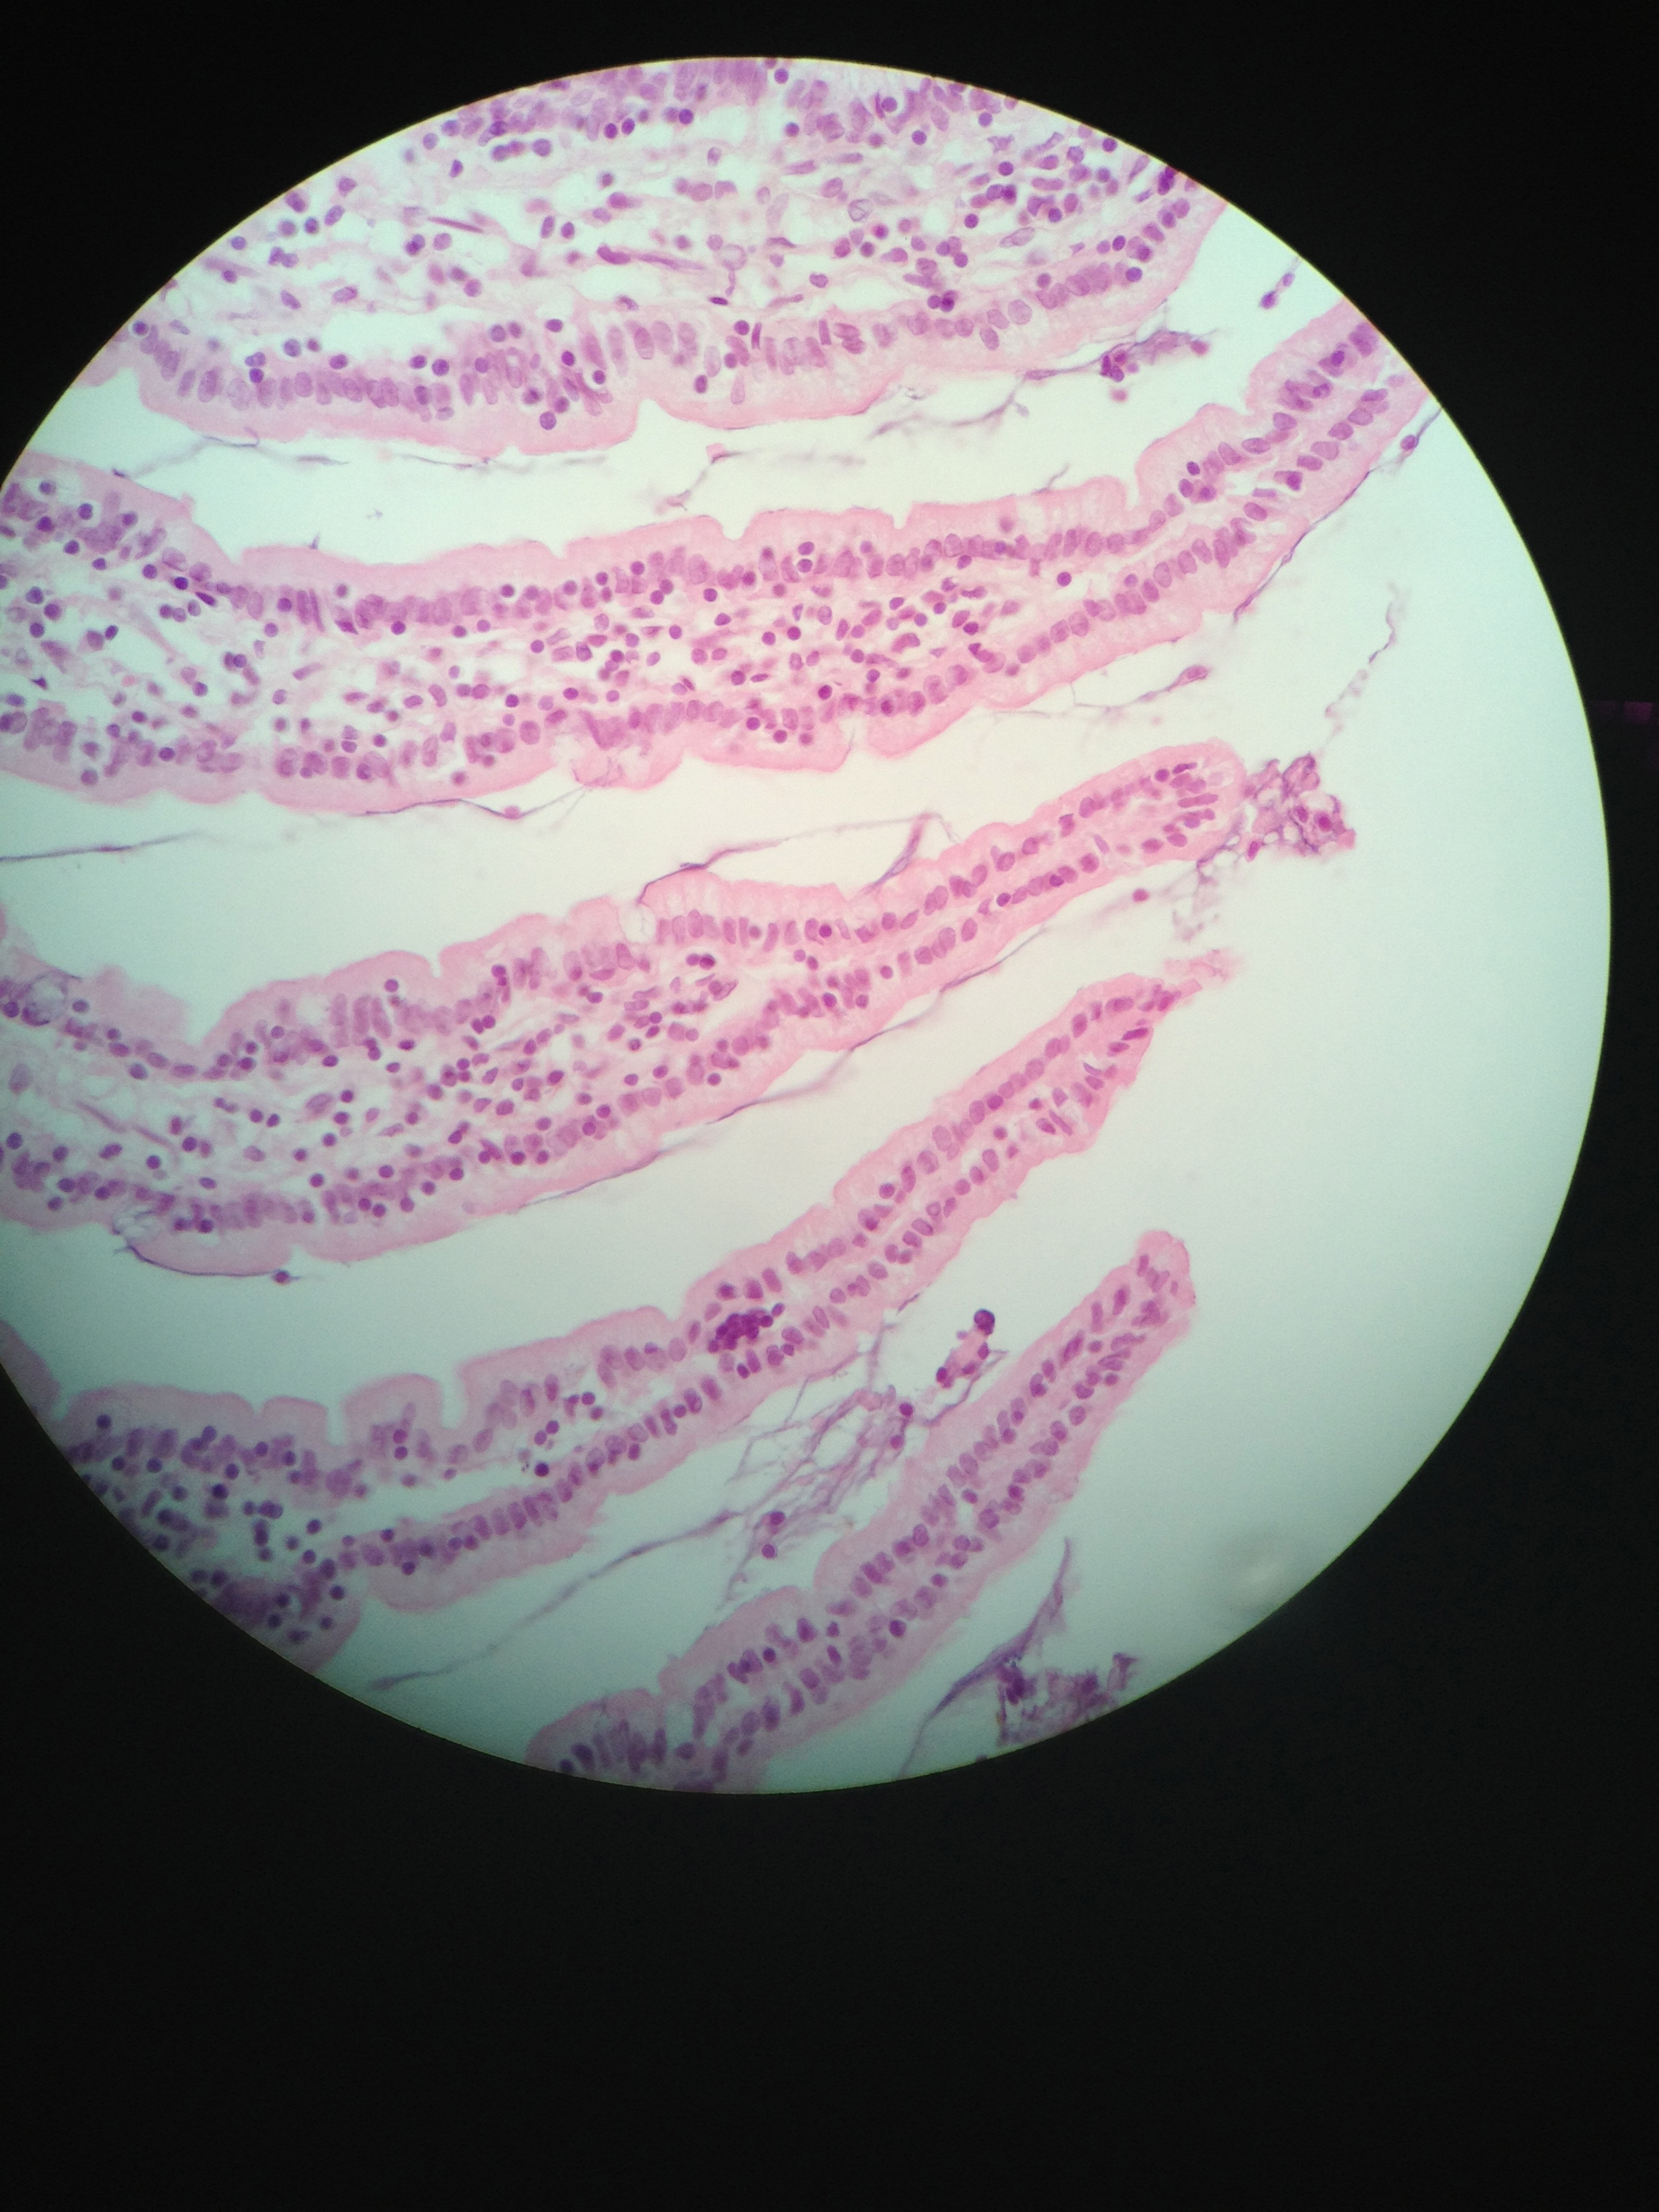 simple columnar (Jejunum) 400X